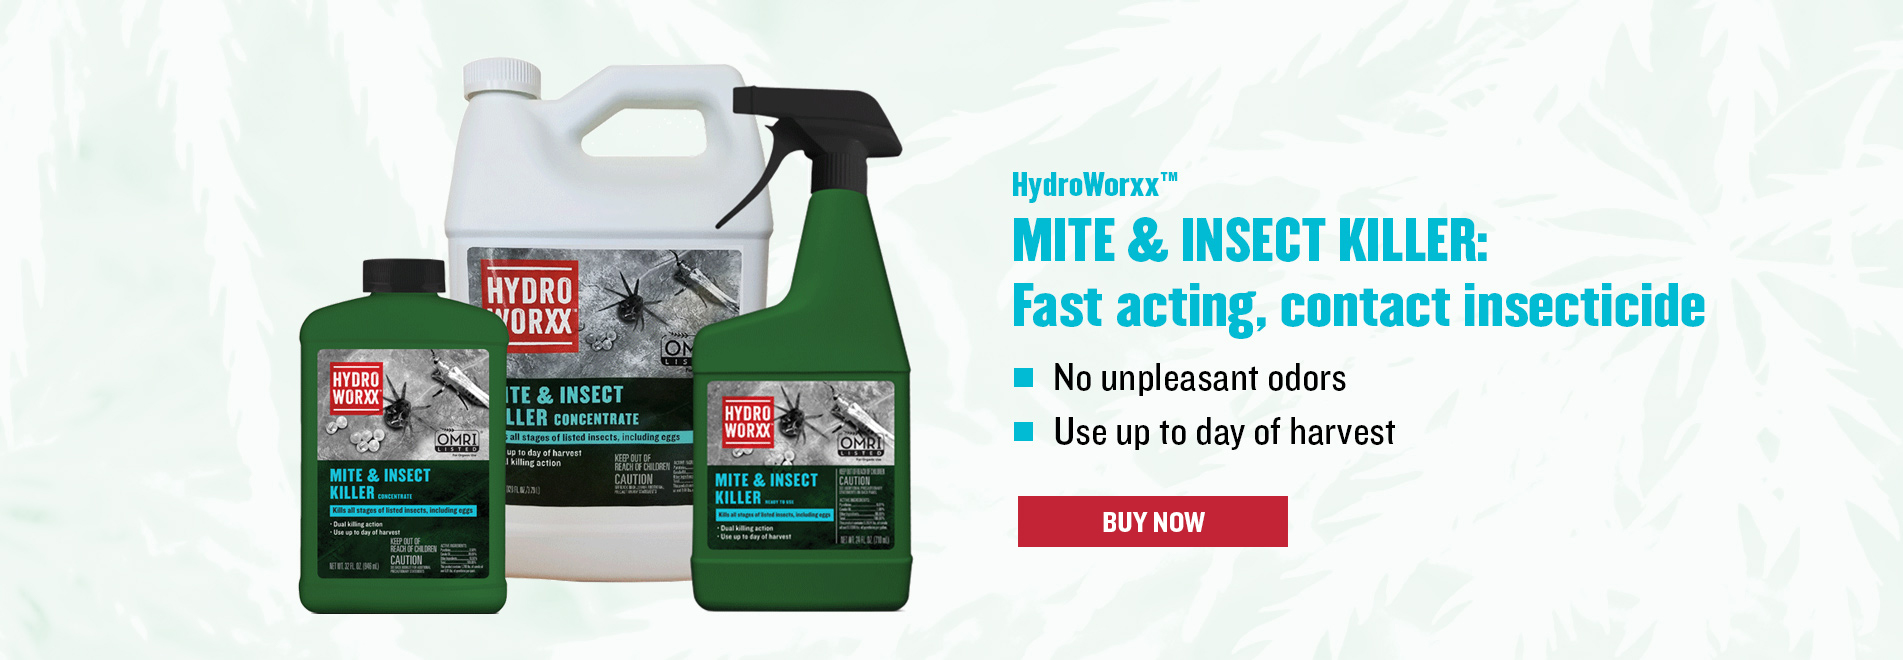 MITE & INSECT KILLER